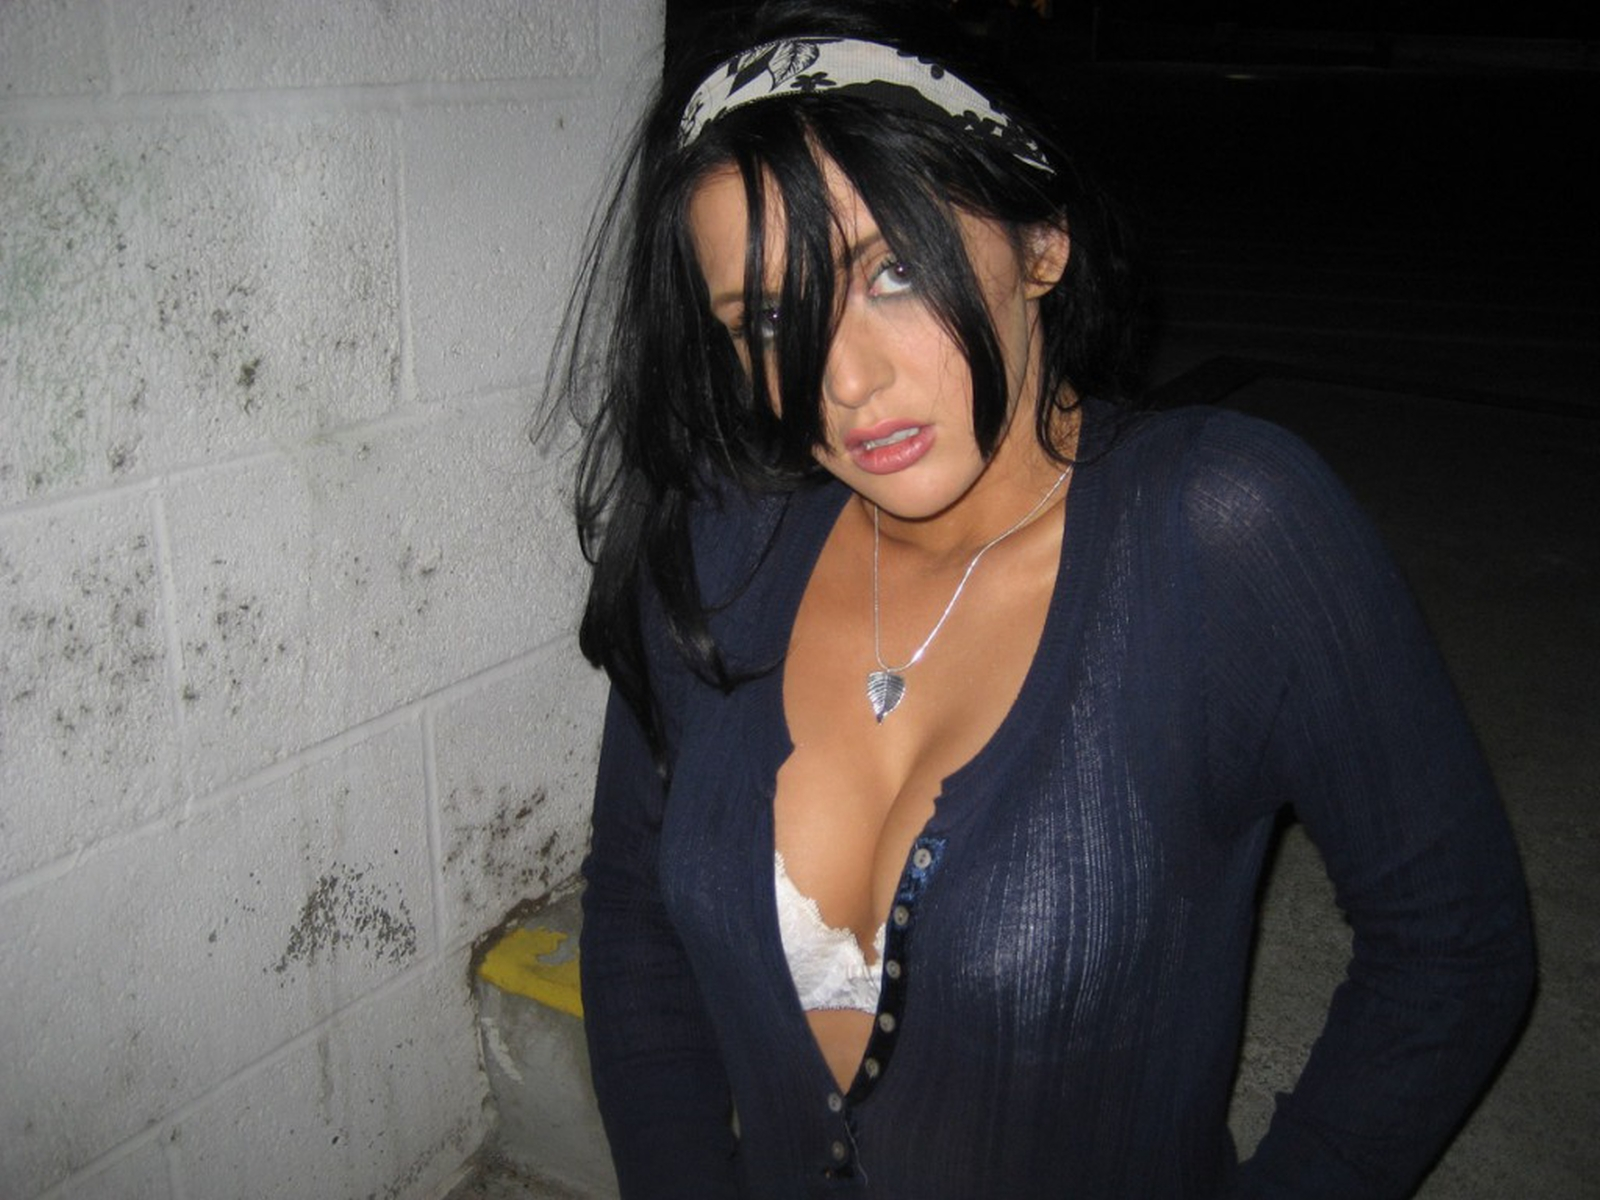 veronica-ricci-nude-flash-in-public-night-car-park-25